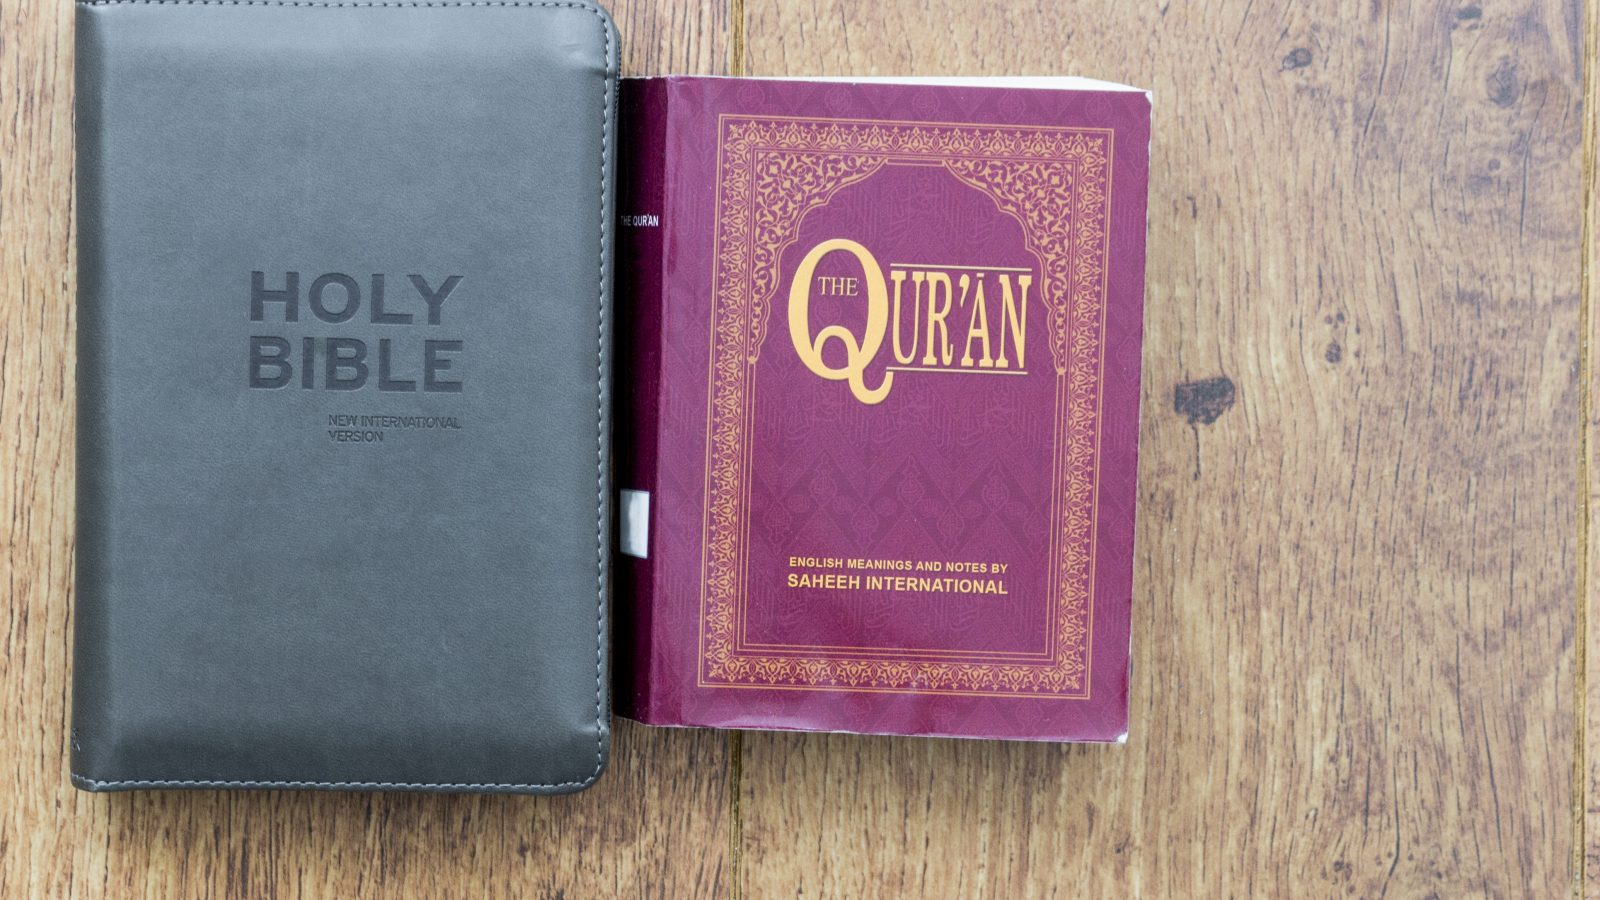 Black Holy Bible next to a Red Qur'an on a wood surface